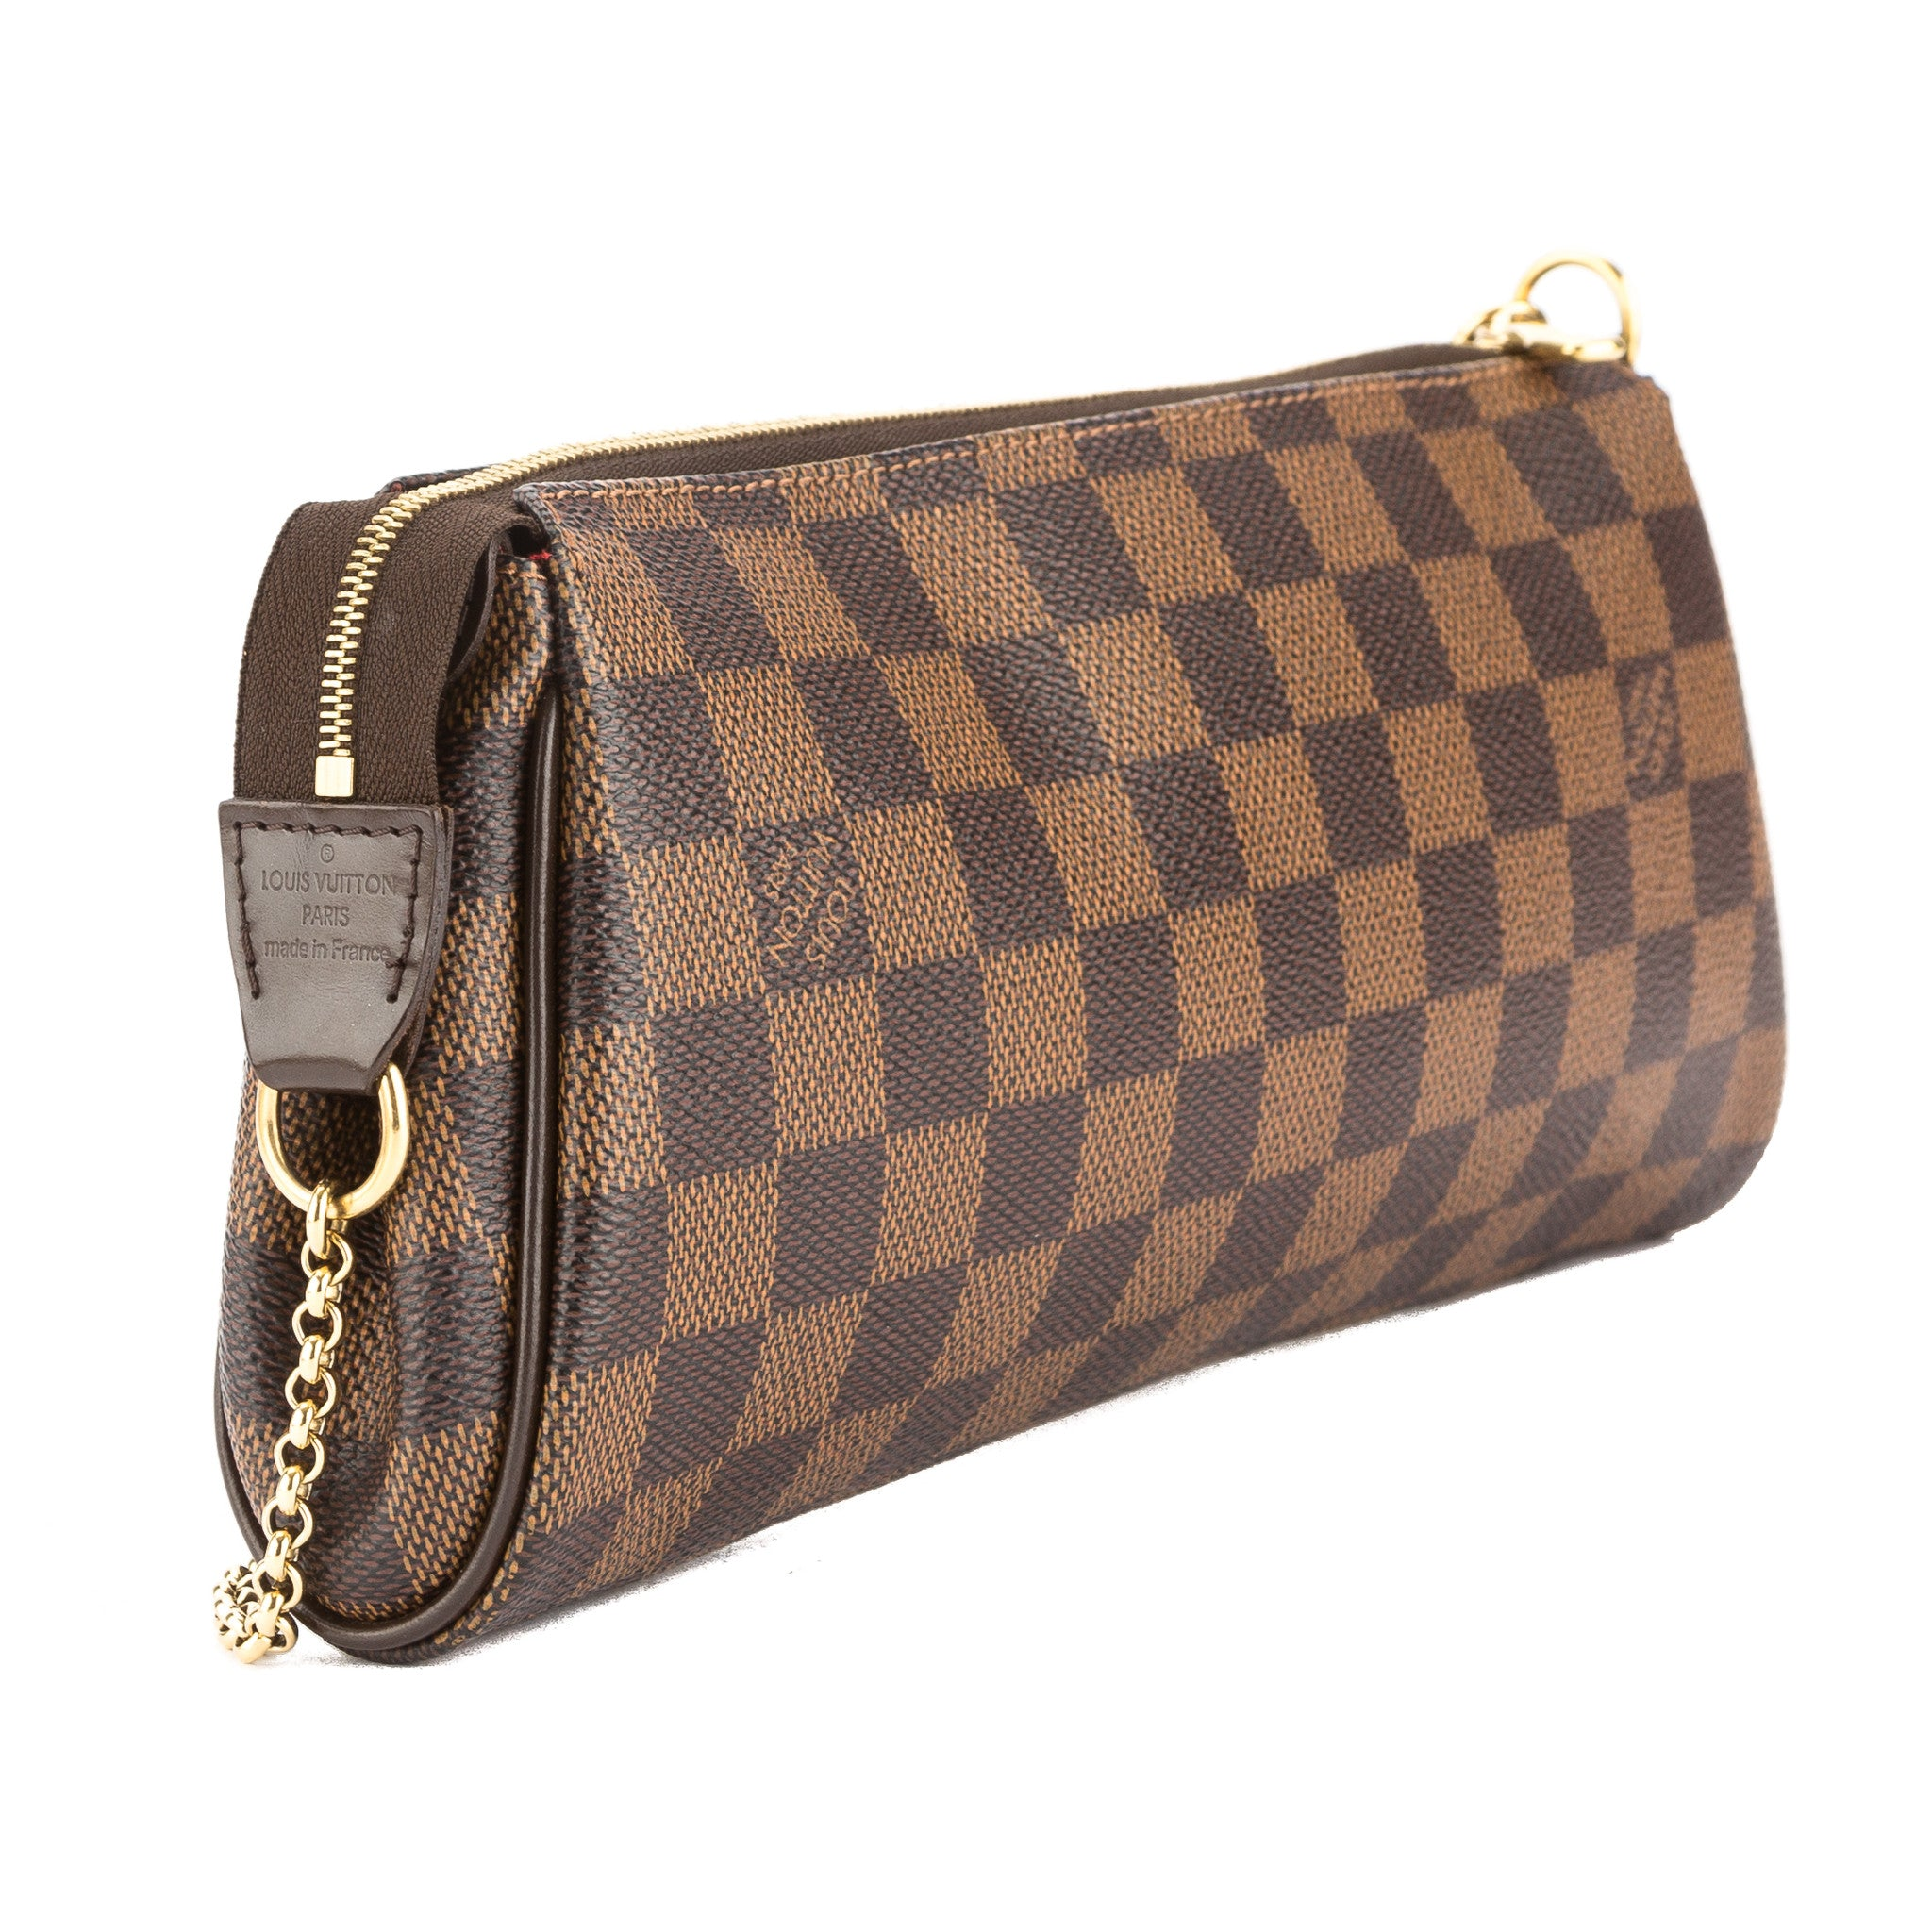 44297a2fc5d4 Louis Vuitton Damier Ebene Canvas Eva Bag (Pre Owned) - 3487002